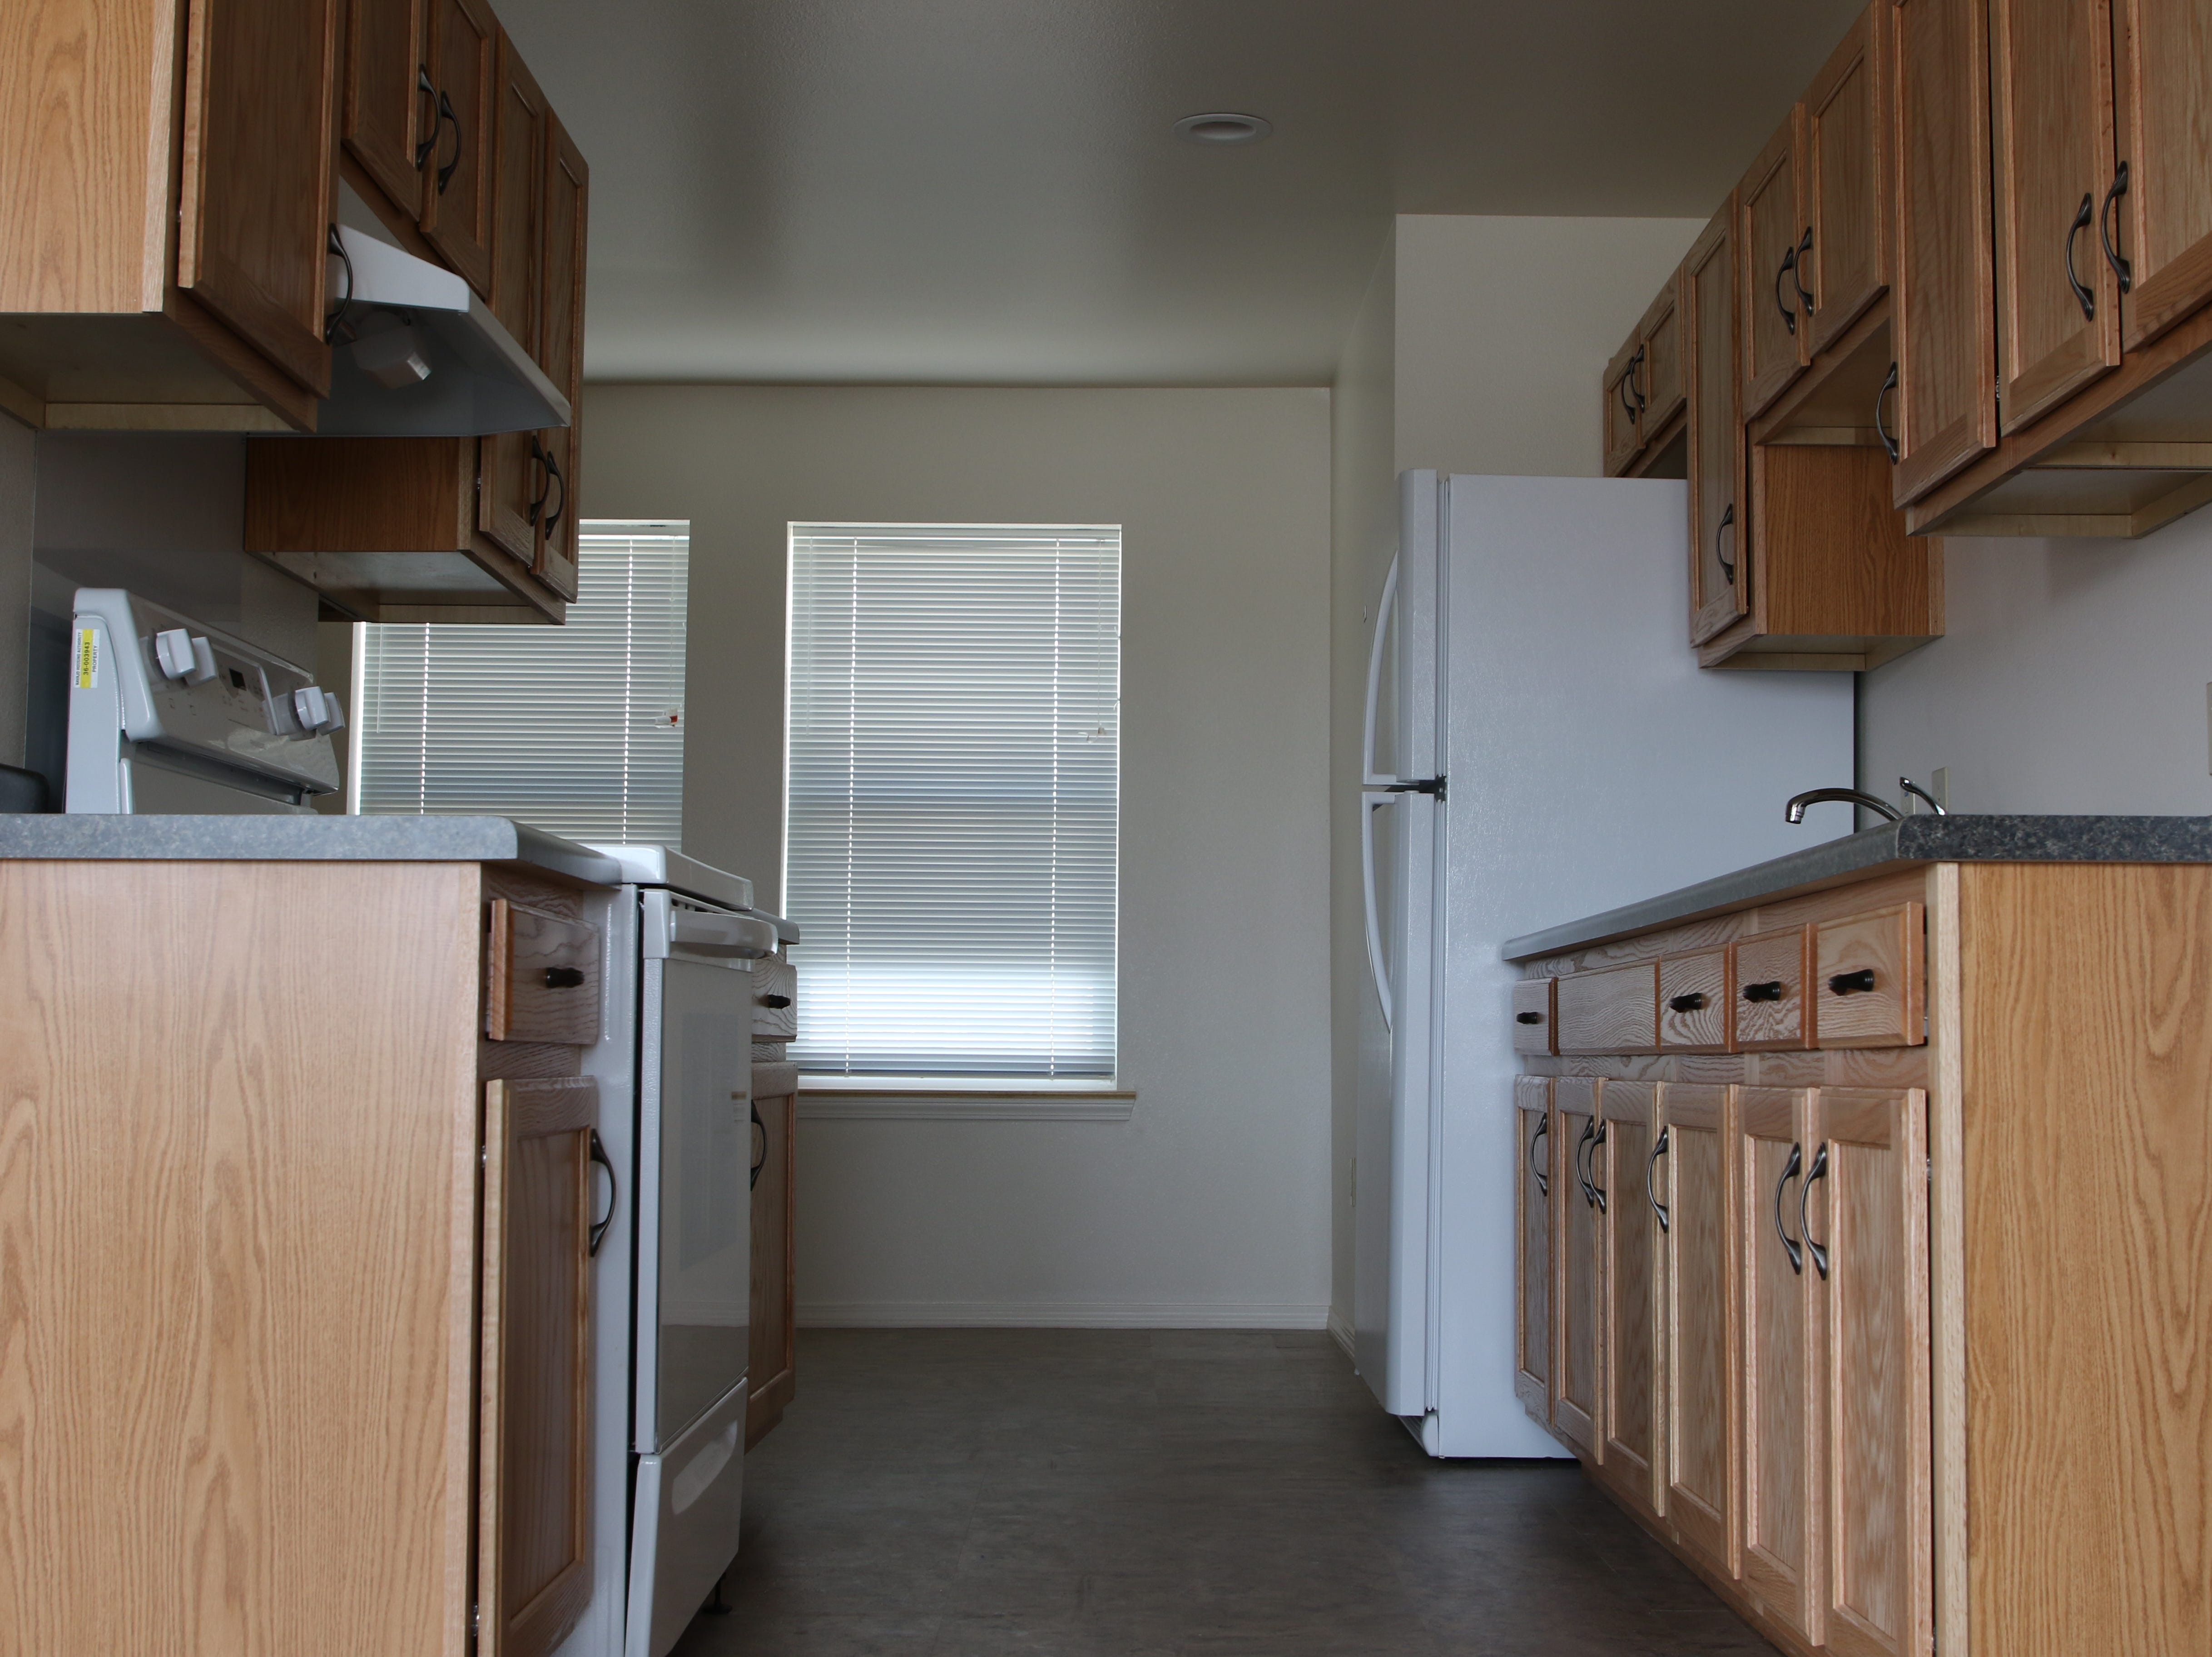 The modernization project for 10 homes in Newcomb included new cabinets and appliances for the kitchen.